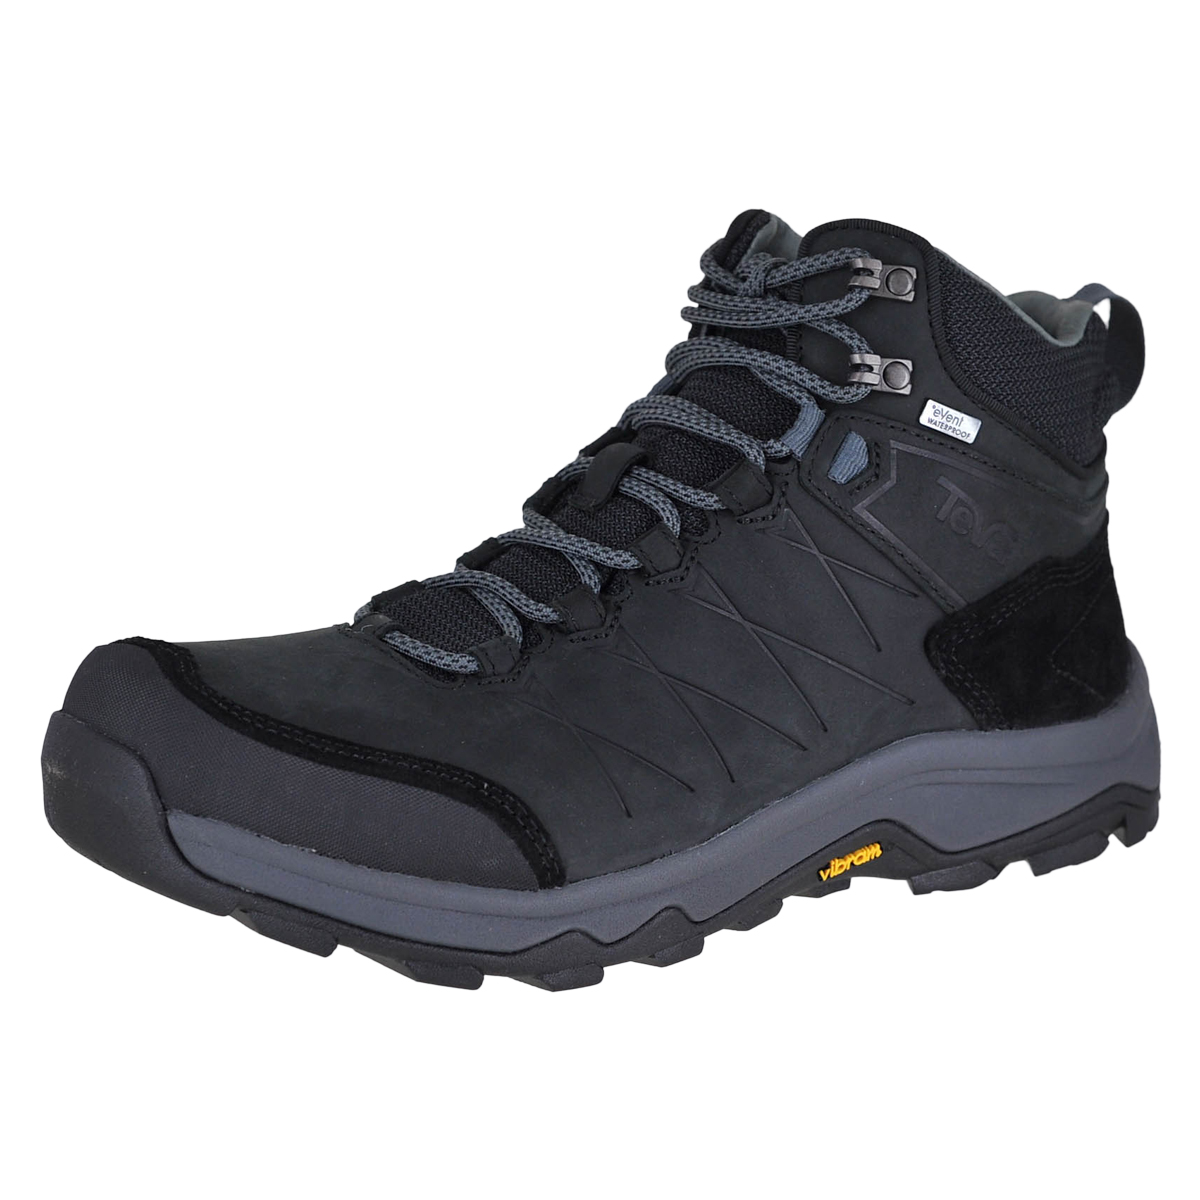 60f86a735c9a6 Details about Teva M Arrowood Riva Mid Wp Black Blk Mens Hiking Boots Size  11.5M